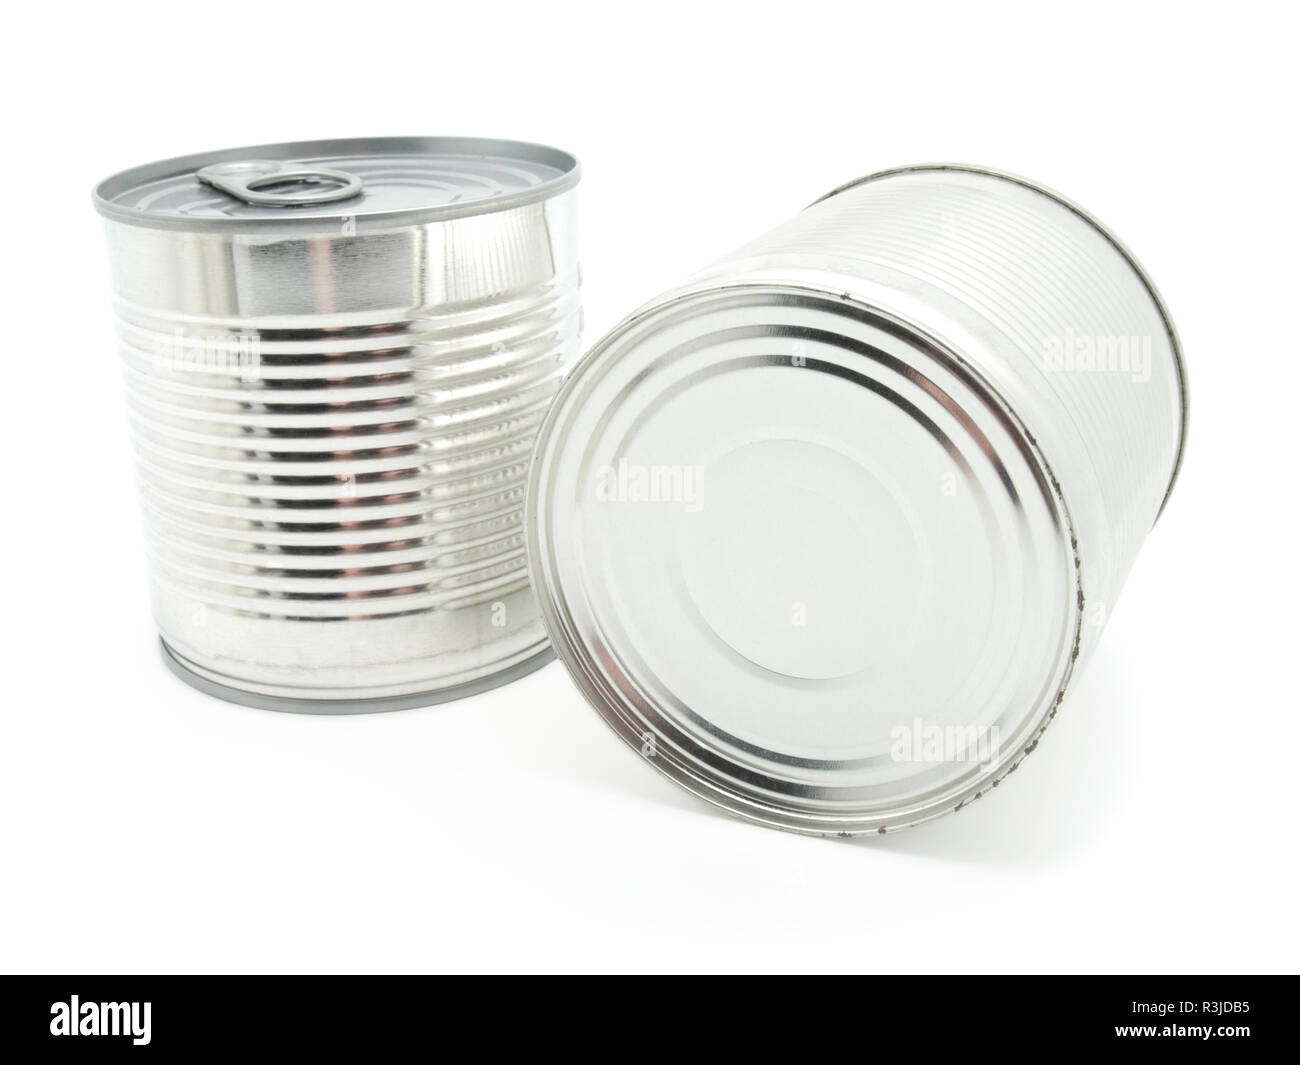 tinned food - Stock Image